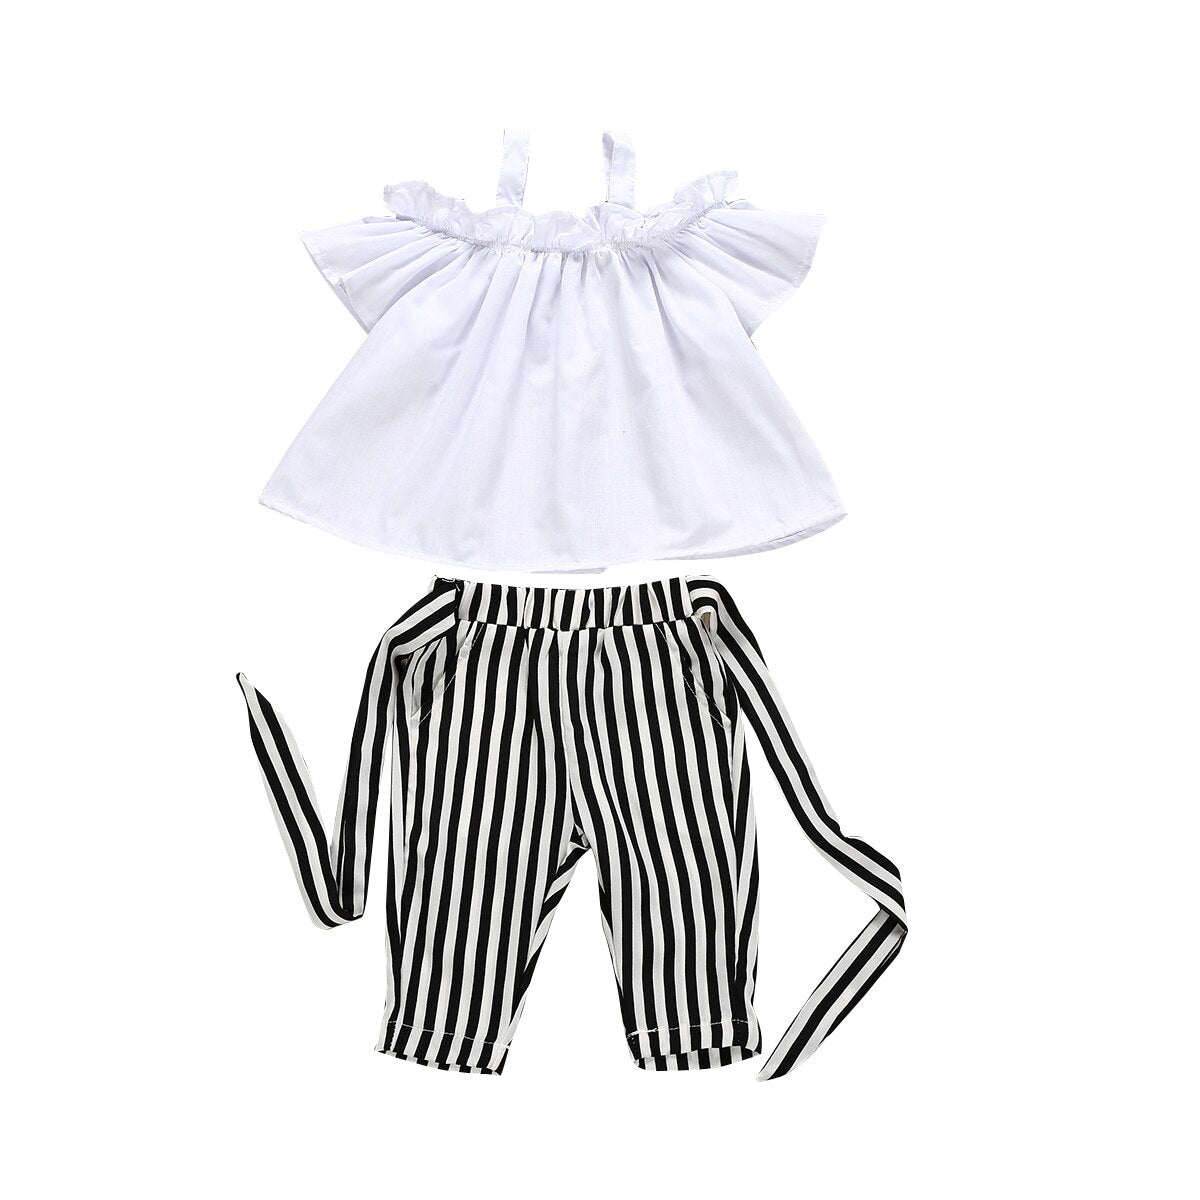 Imcute Sets 2 PCS - Sofizara